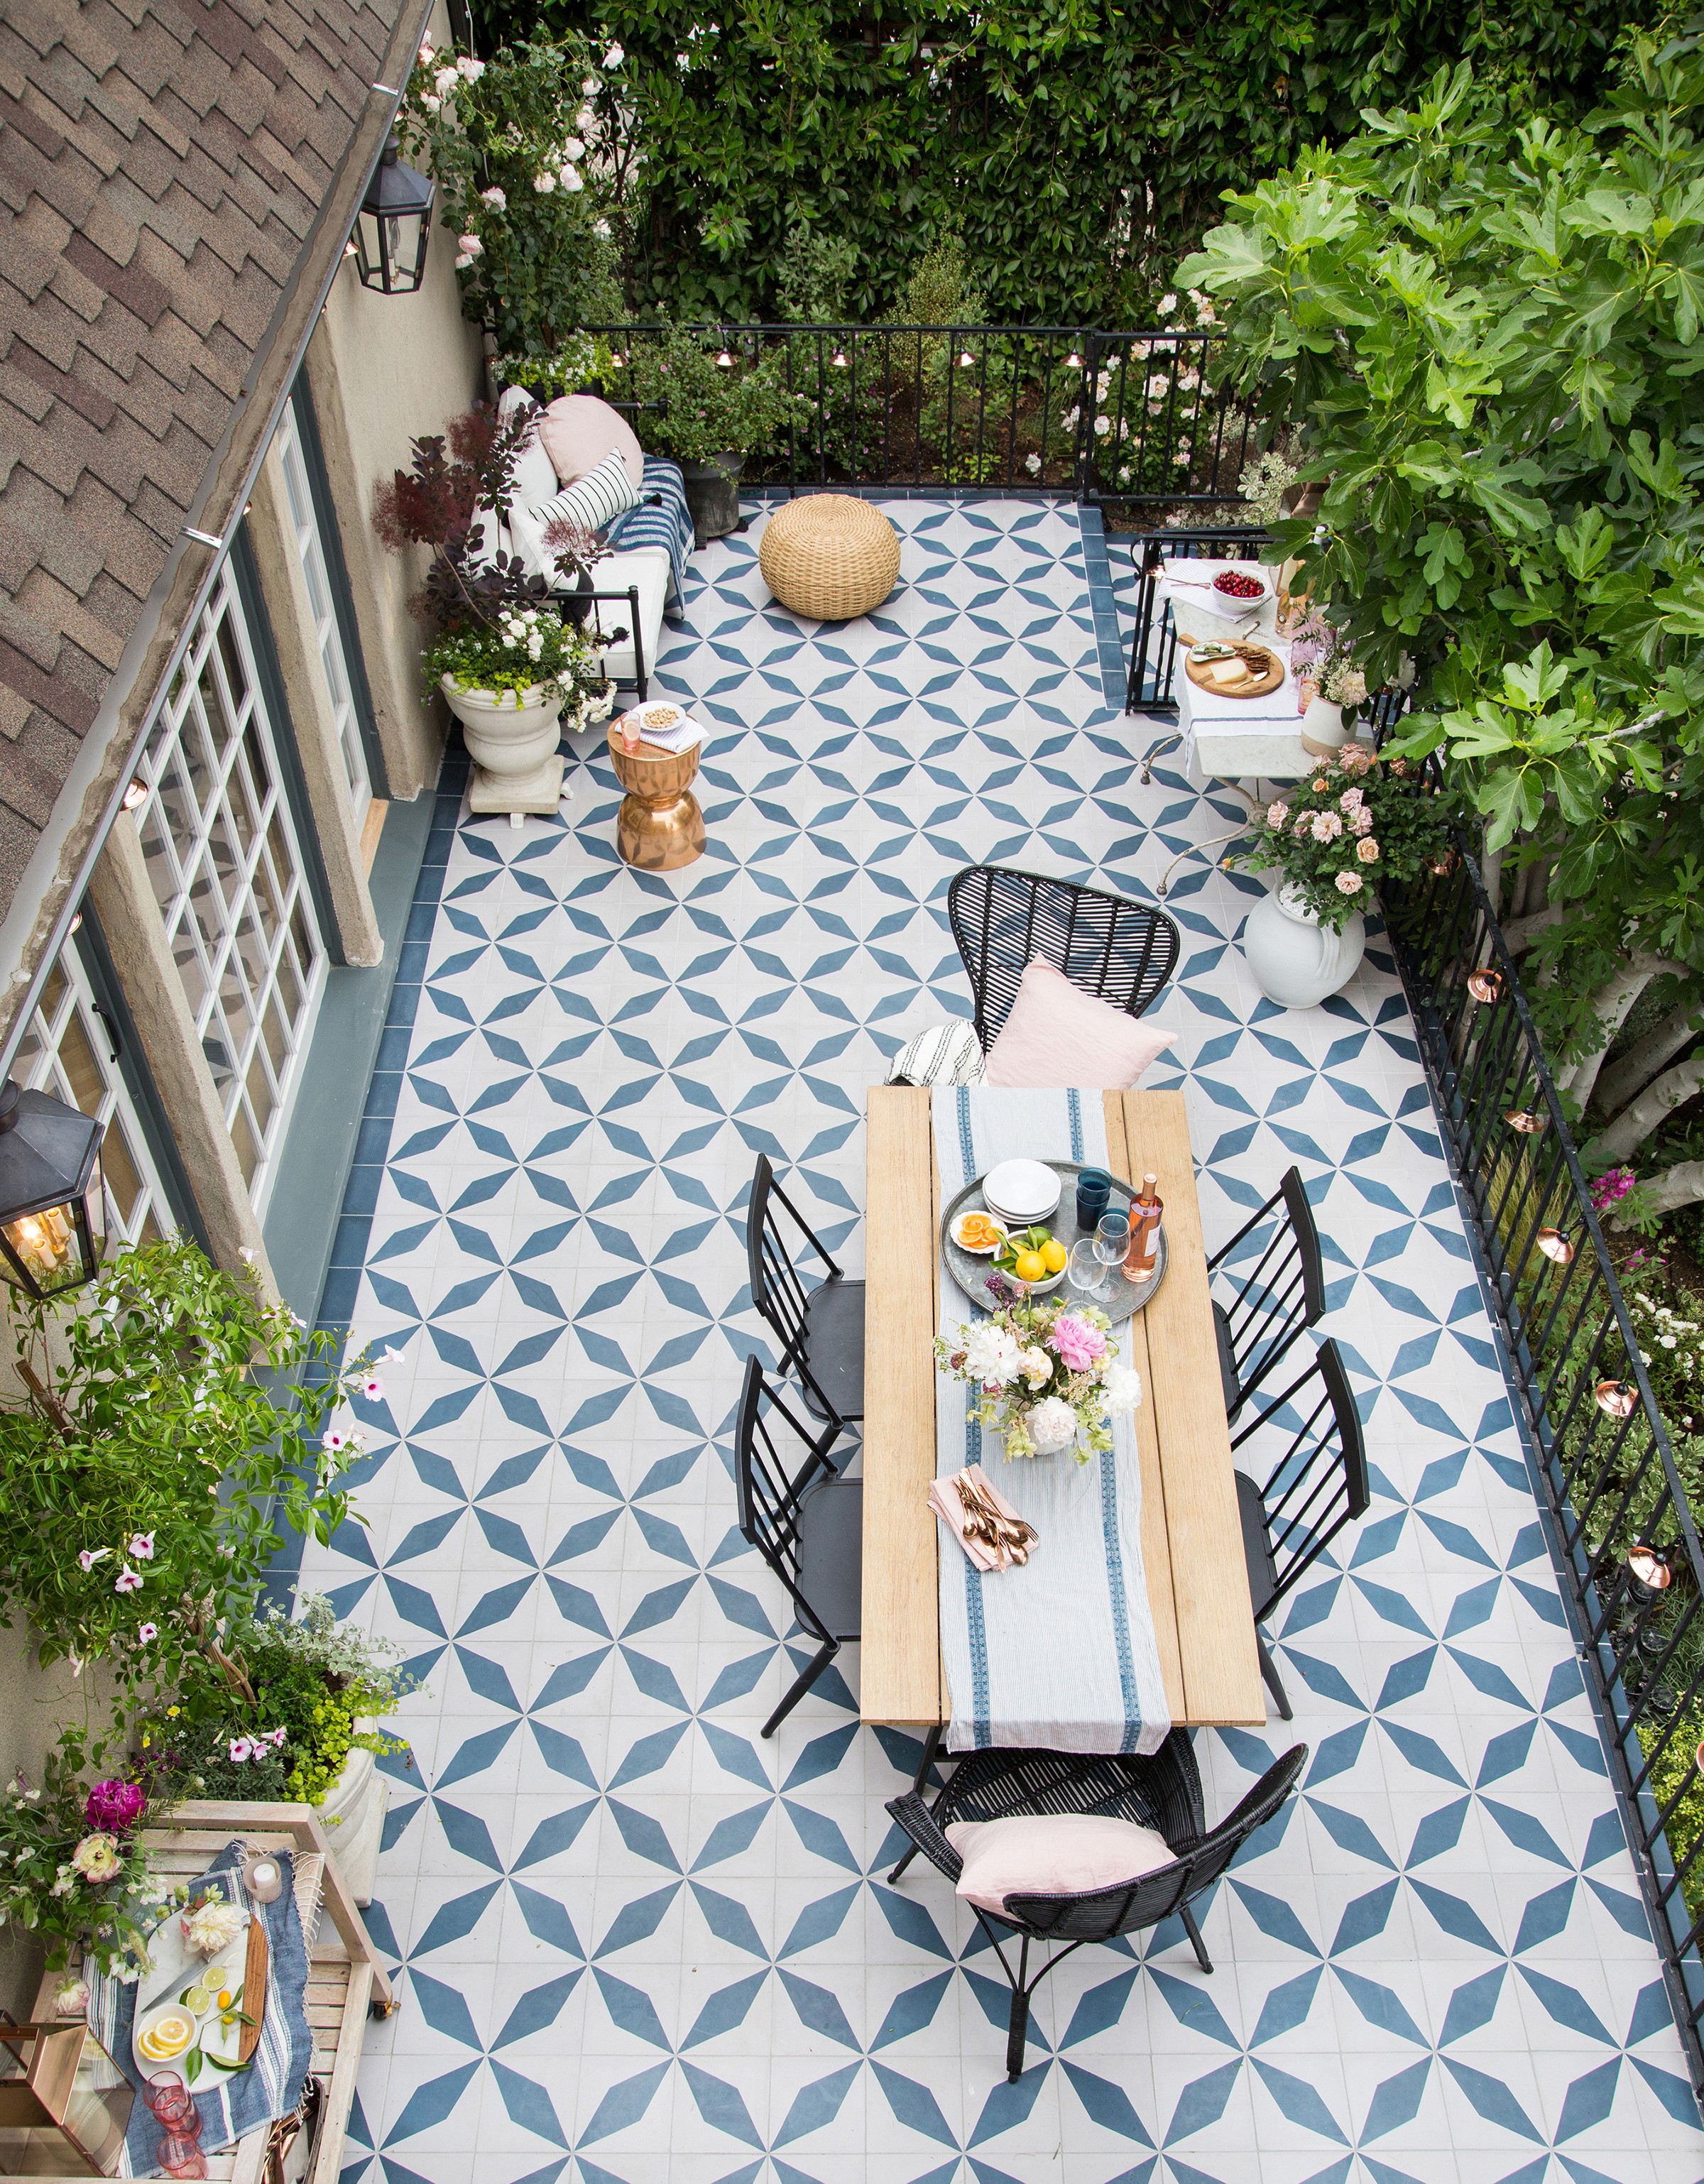 emily henderson outdoor tile granada tile echo collection buniel pattern midnight hawk patio